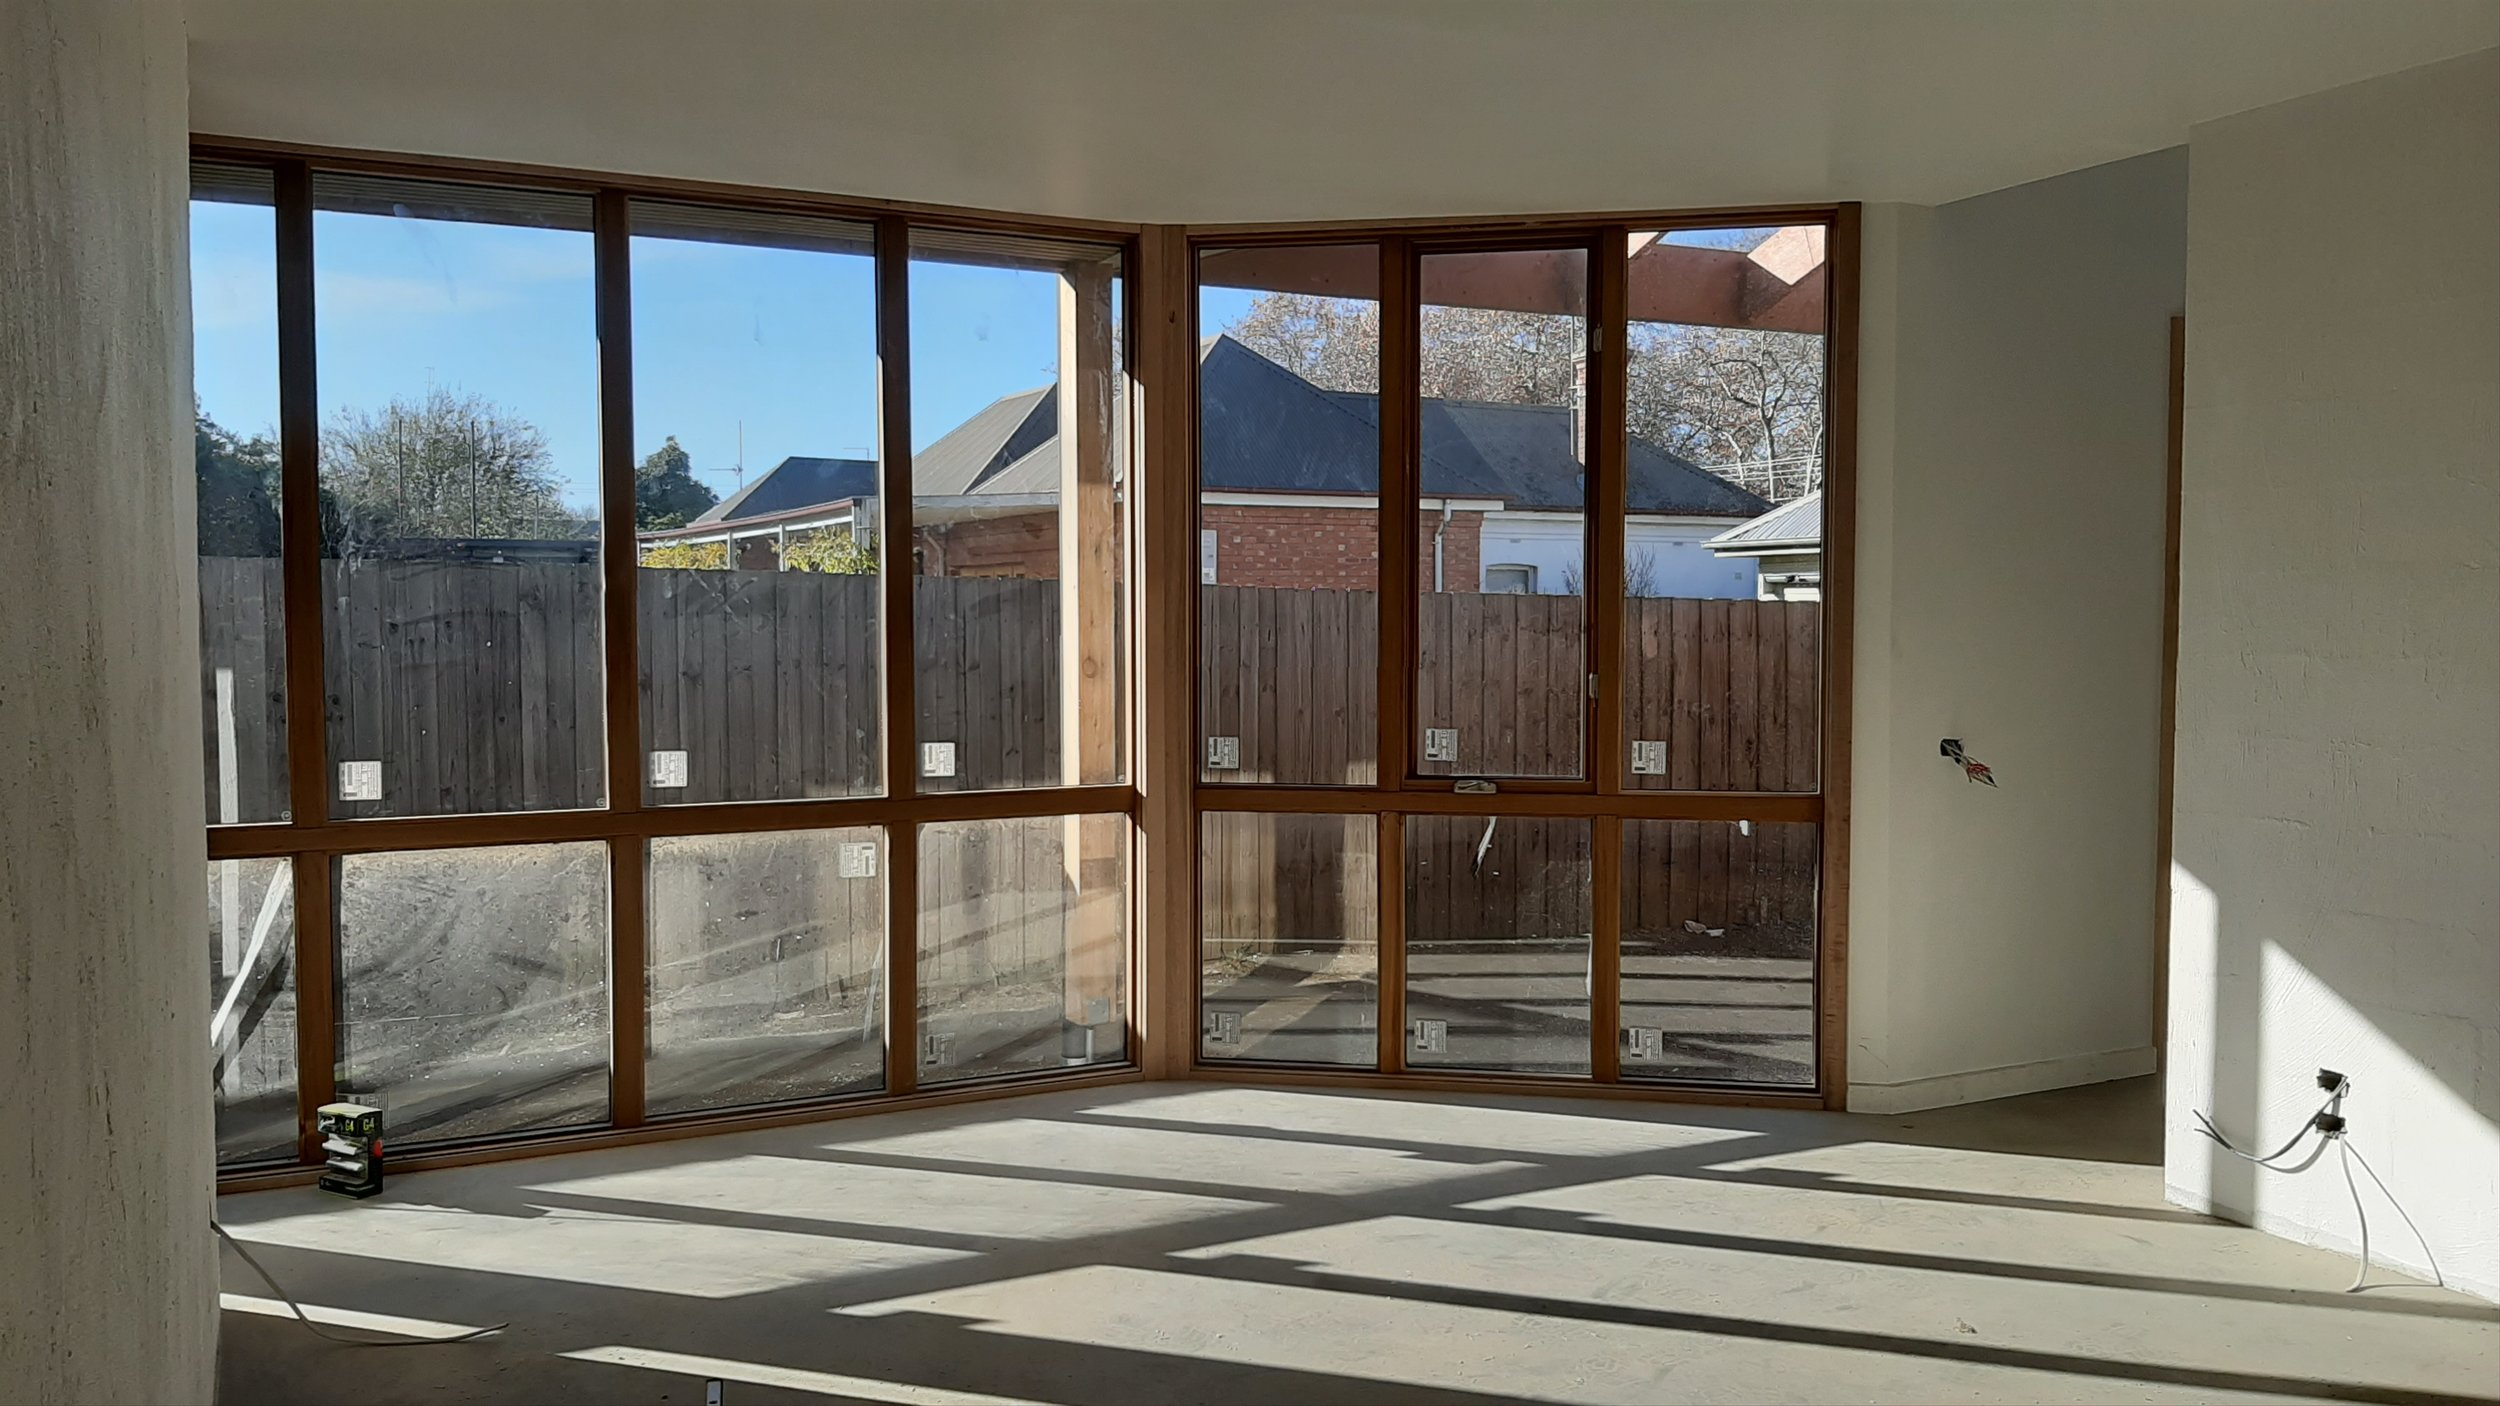 North facing living area with sunlight striking the concrete floor and internal blockwork wall